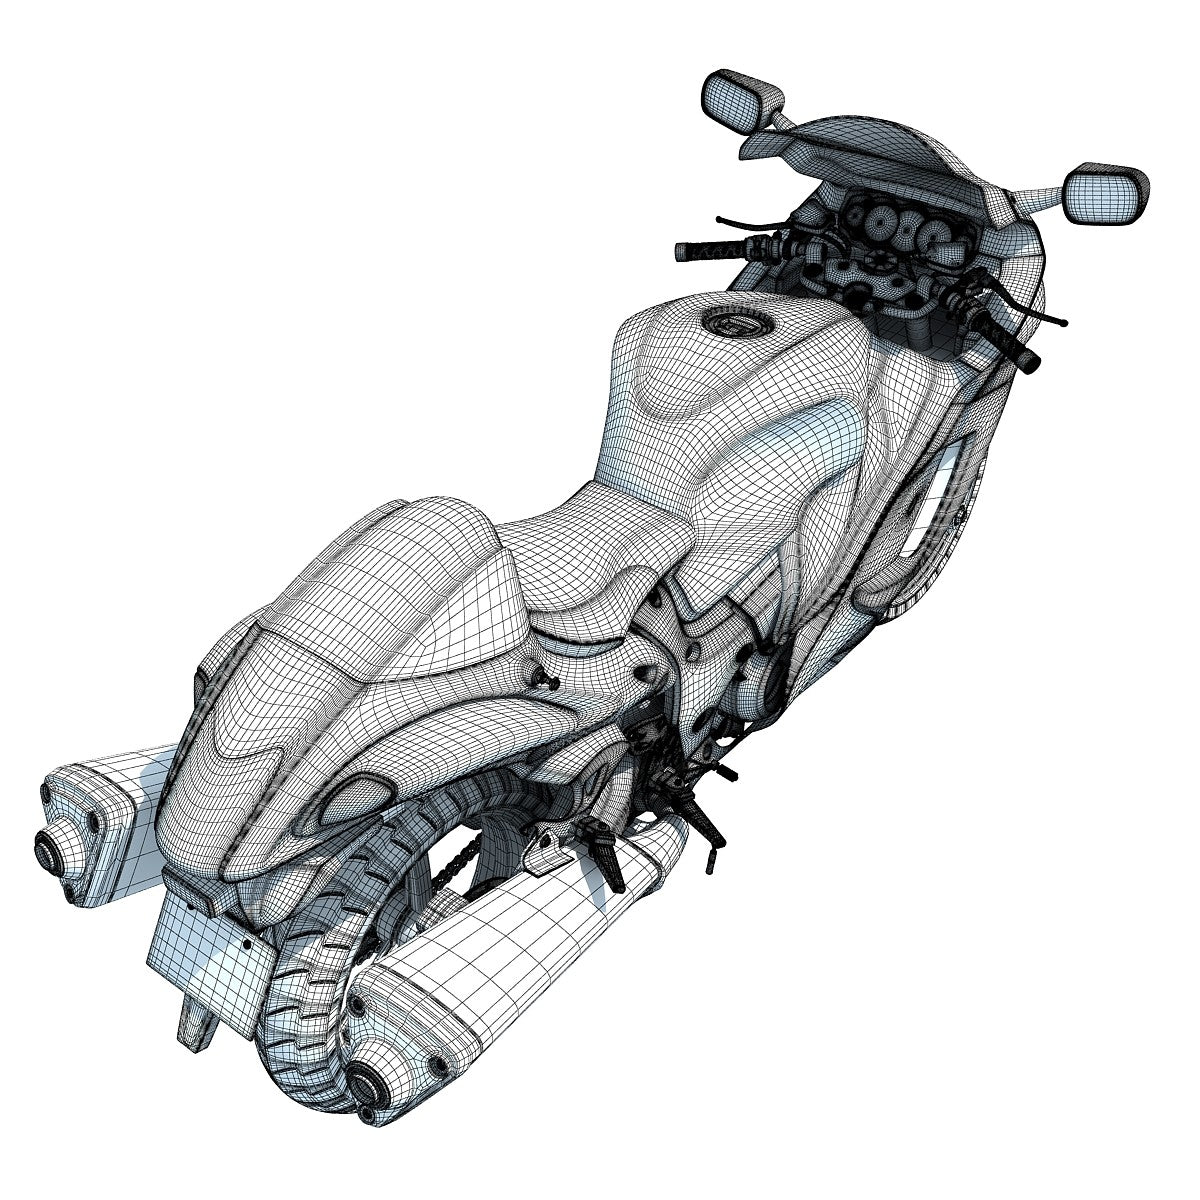 Motorcycle 3D Models